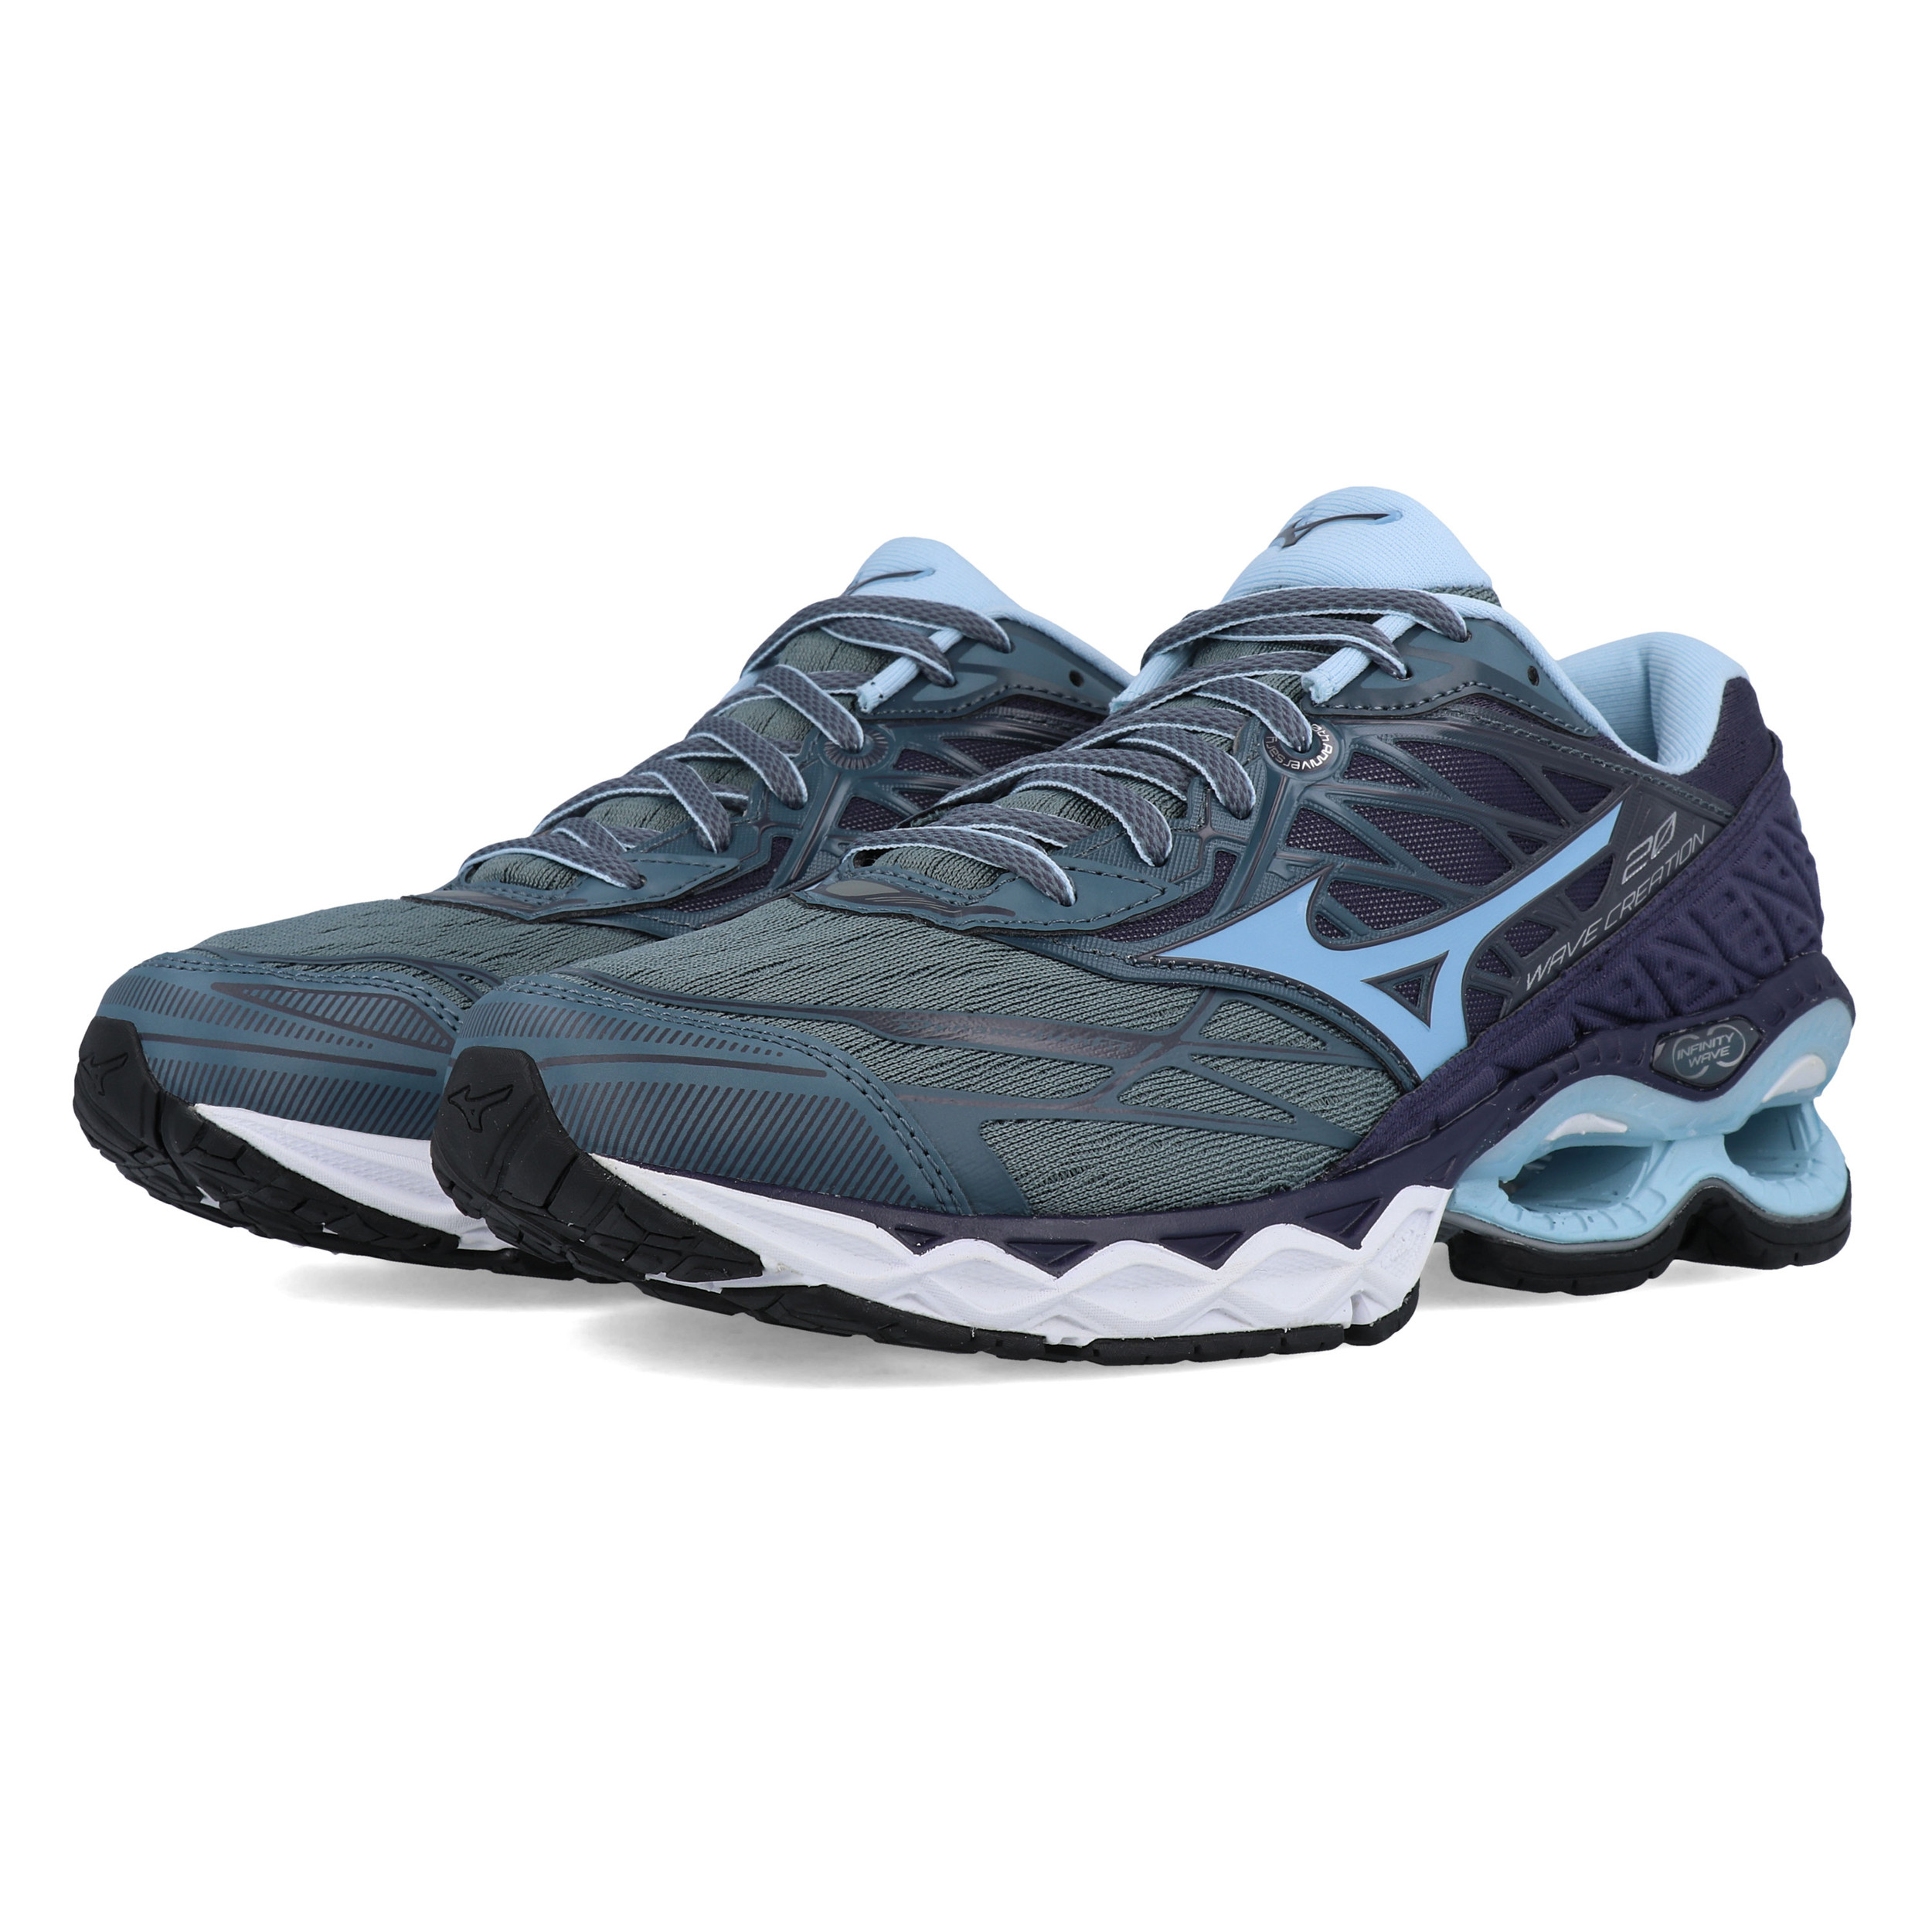 Mizuno Wave Creation 20 Women's Running Shoes - SS19